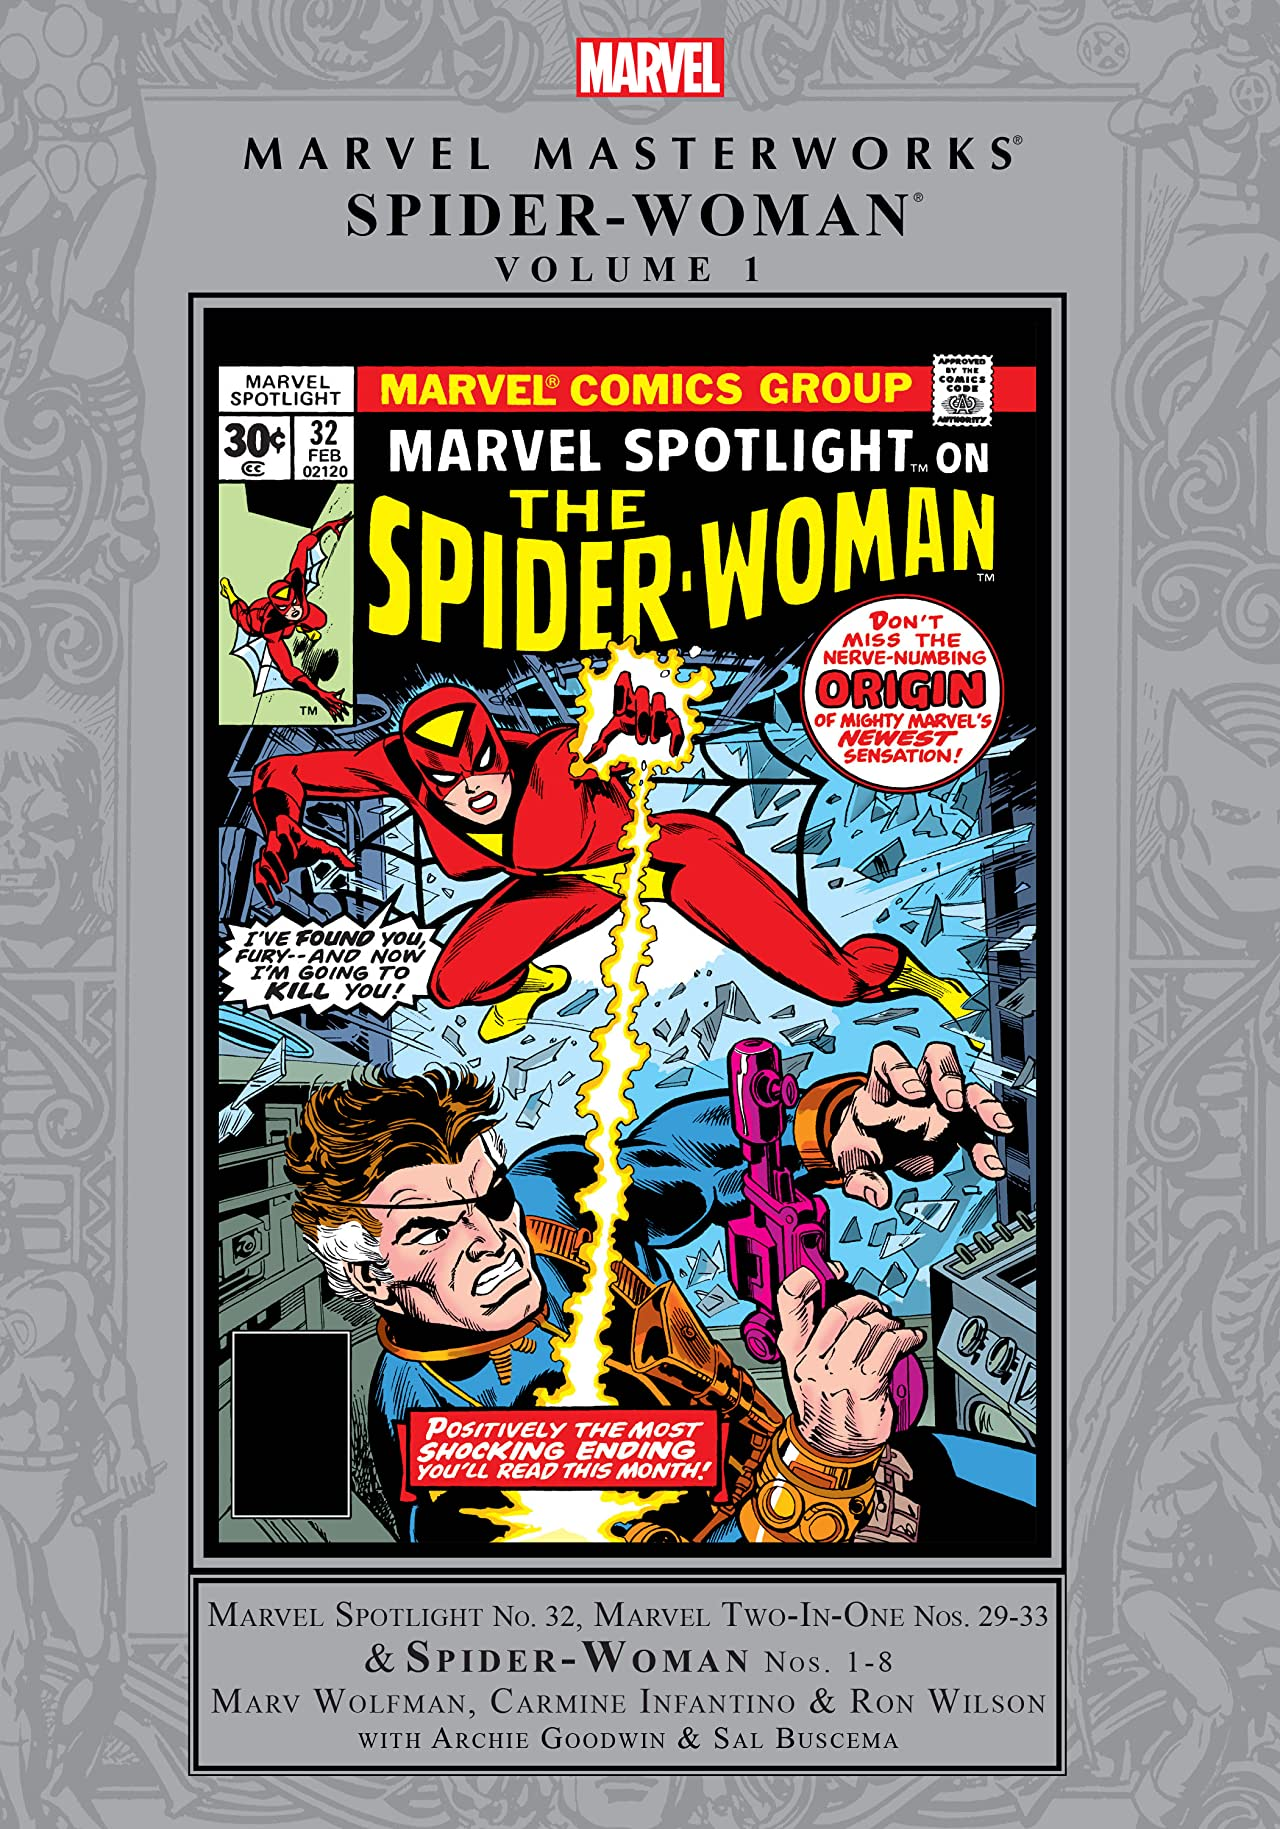 Spider-Woman Masterworks Vol. 1